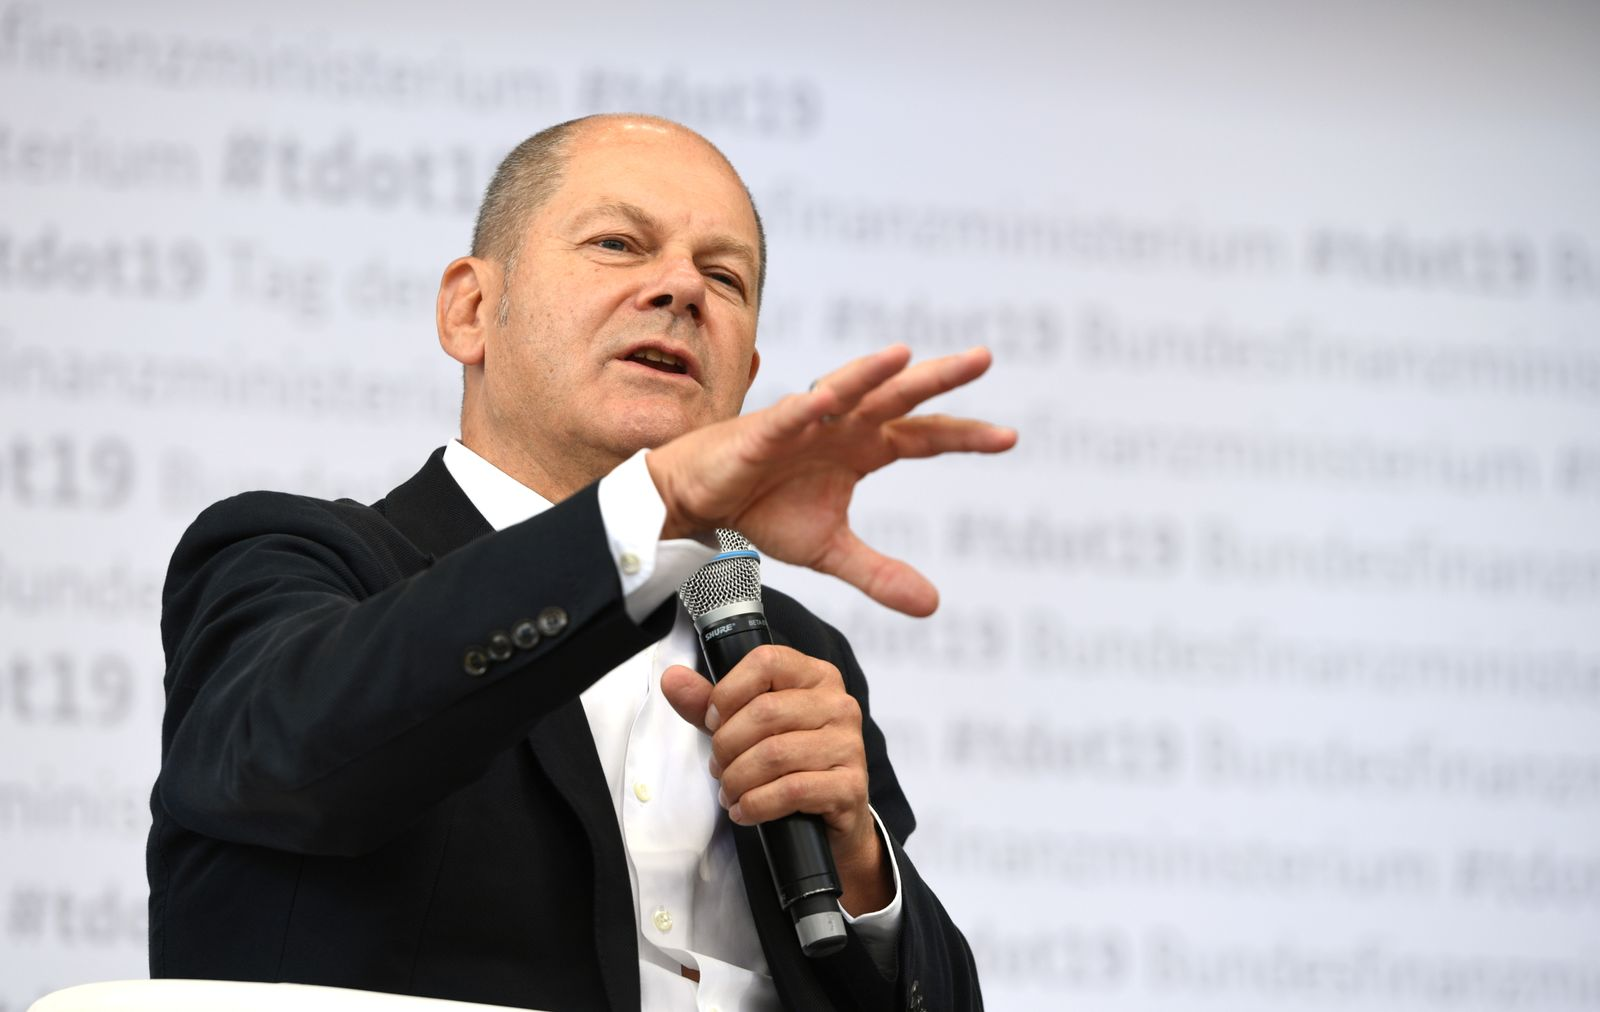 GERMANY-POLITICS/SPD-SCHOLZ